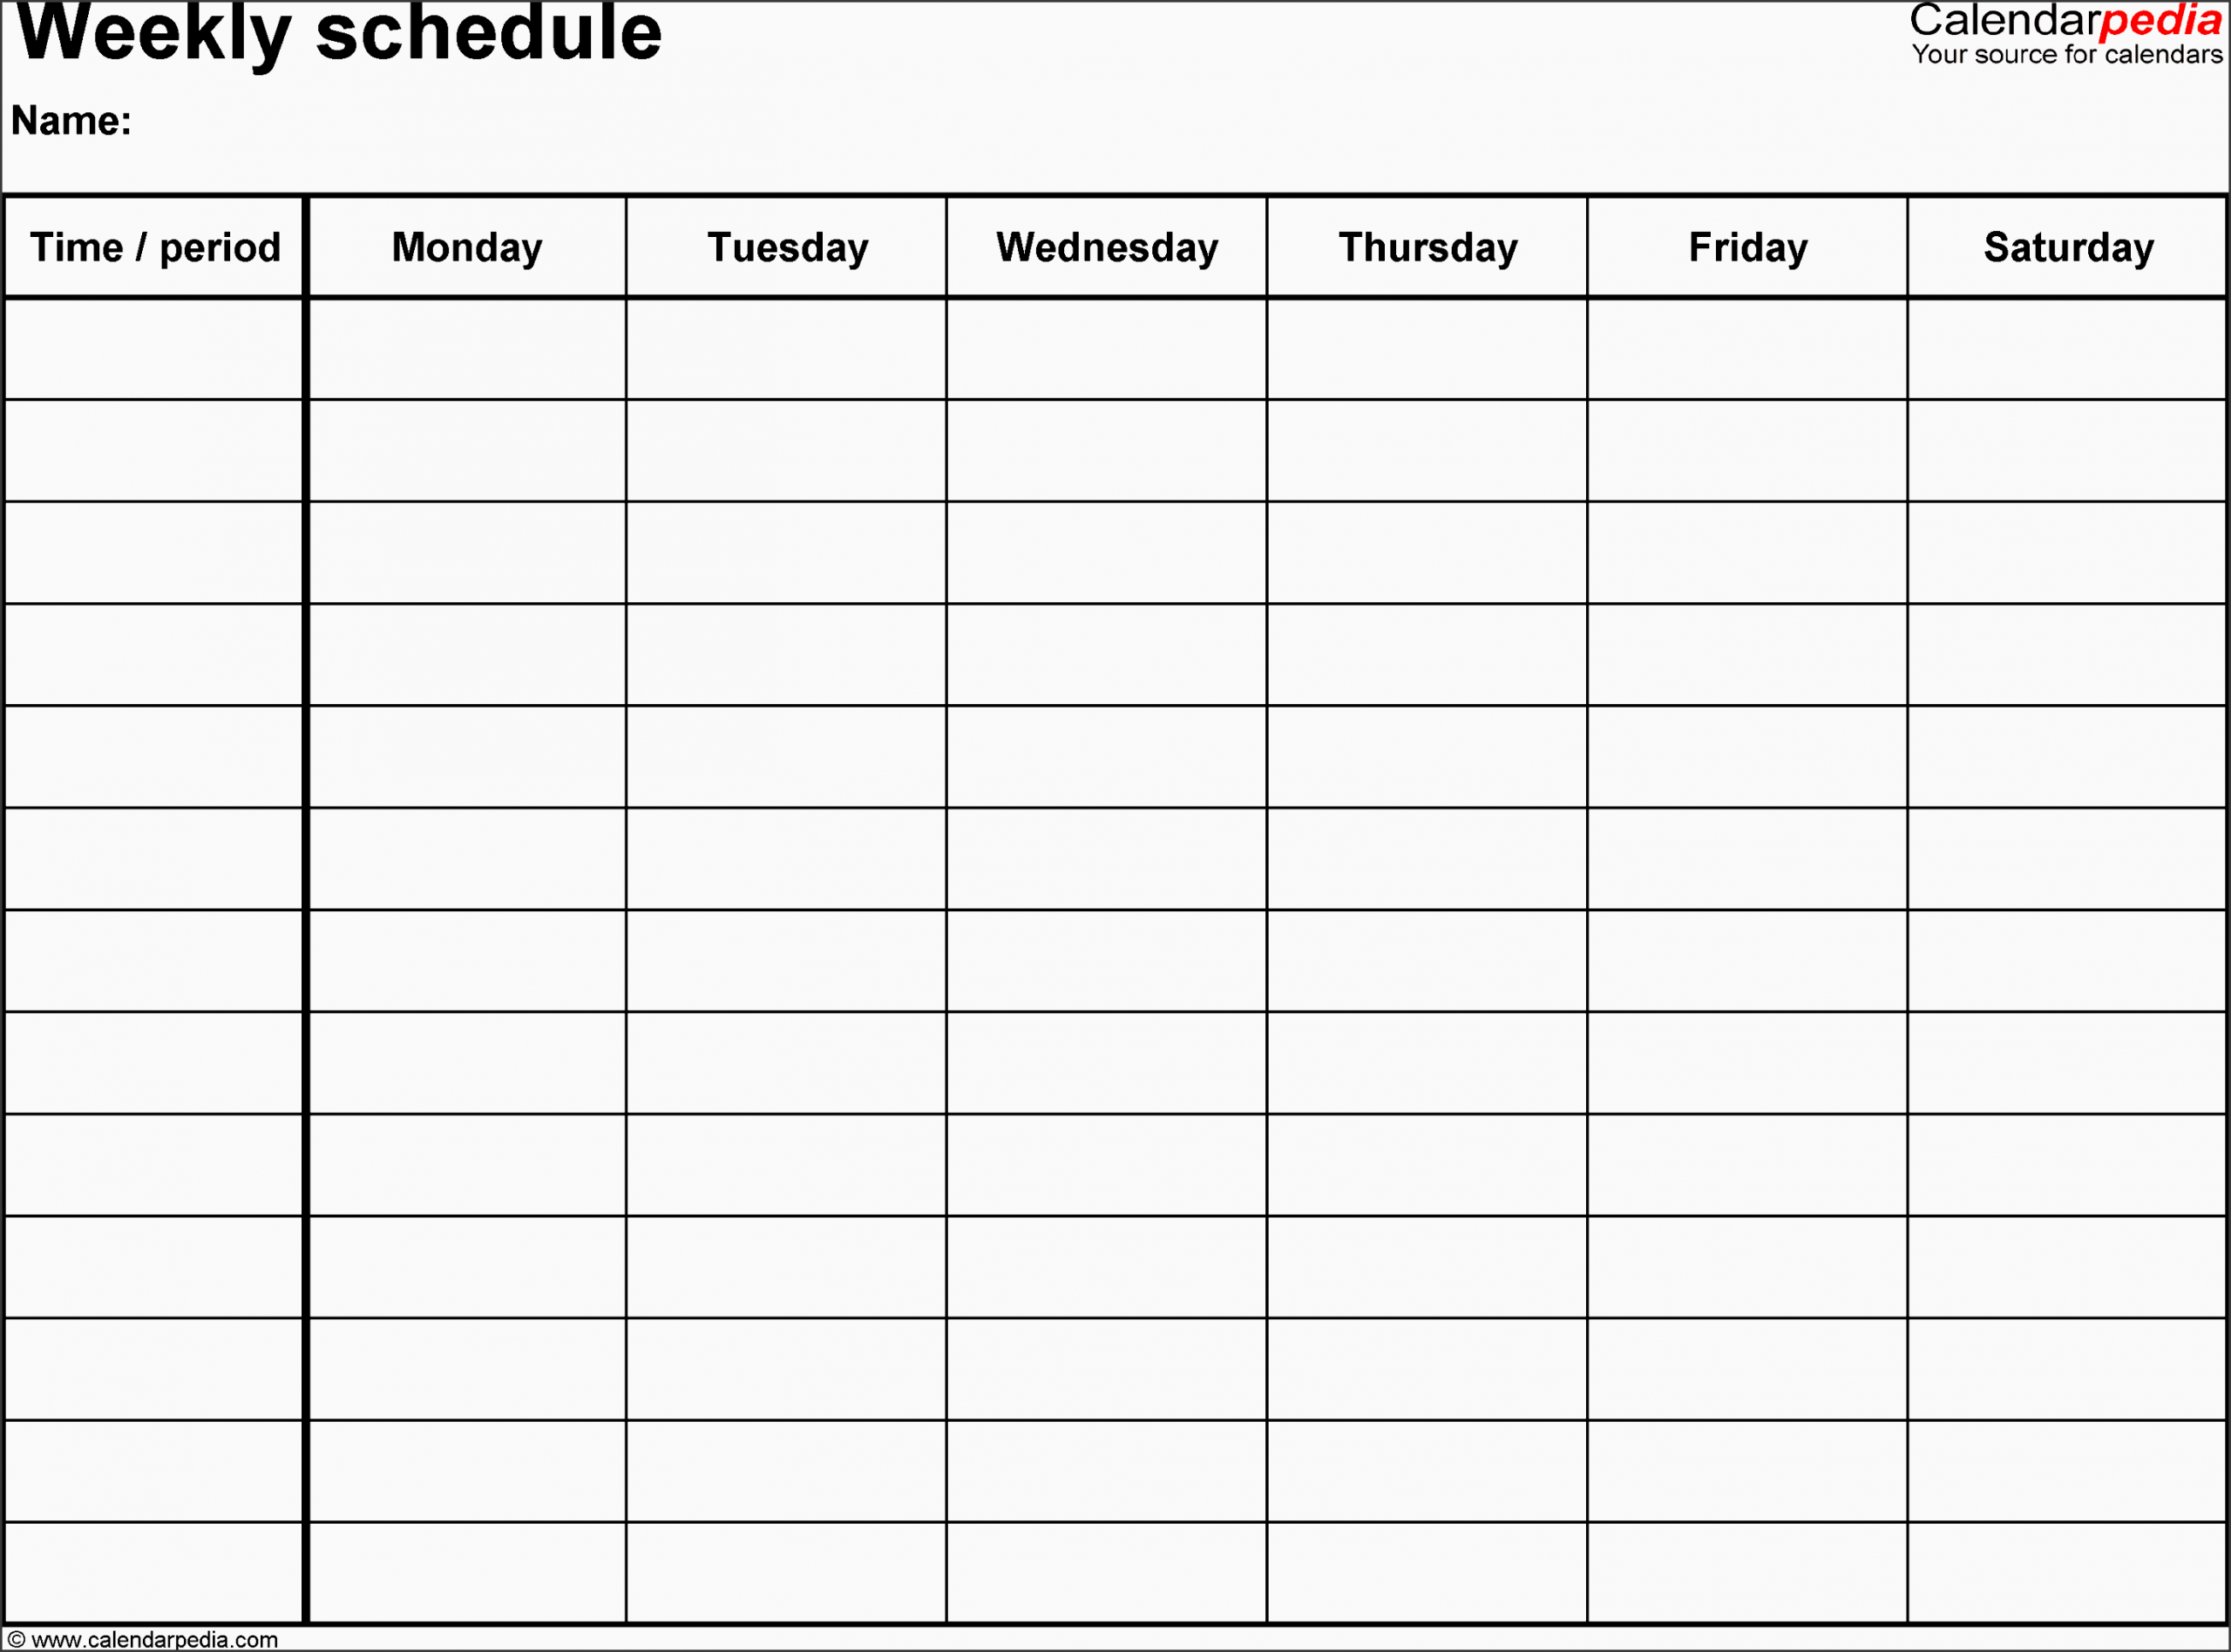 11 Employee Daily Planner Template - Sampletemplatess Monthly Planner With Time Slots